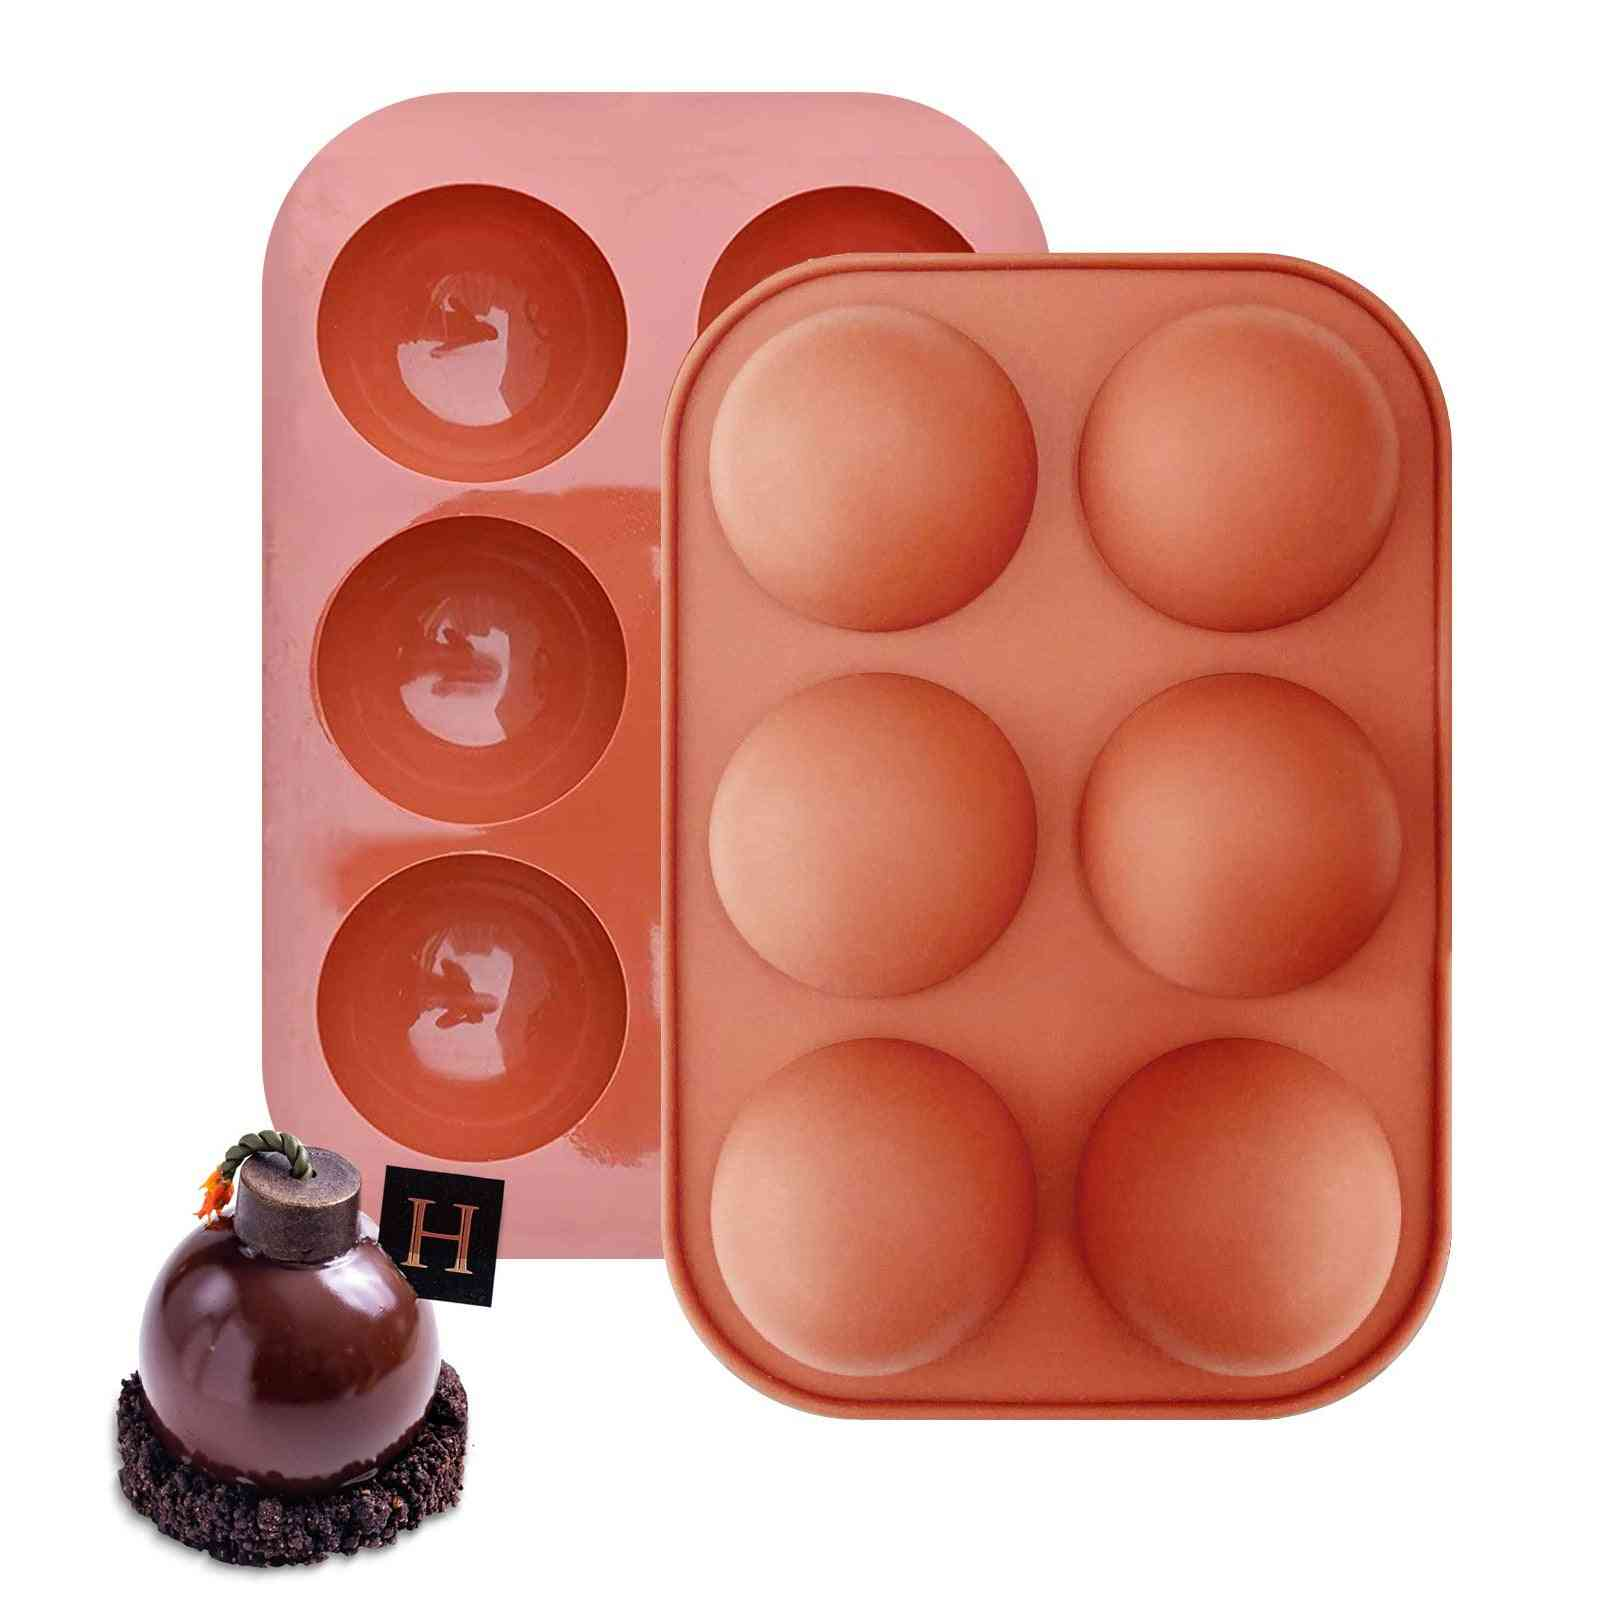 Chocolate Bomb Baking Sphere Silicone Mold